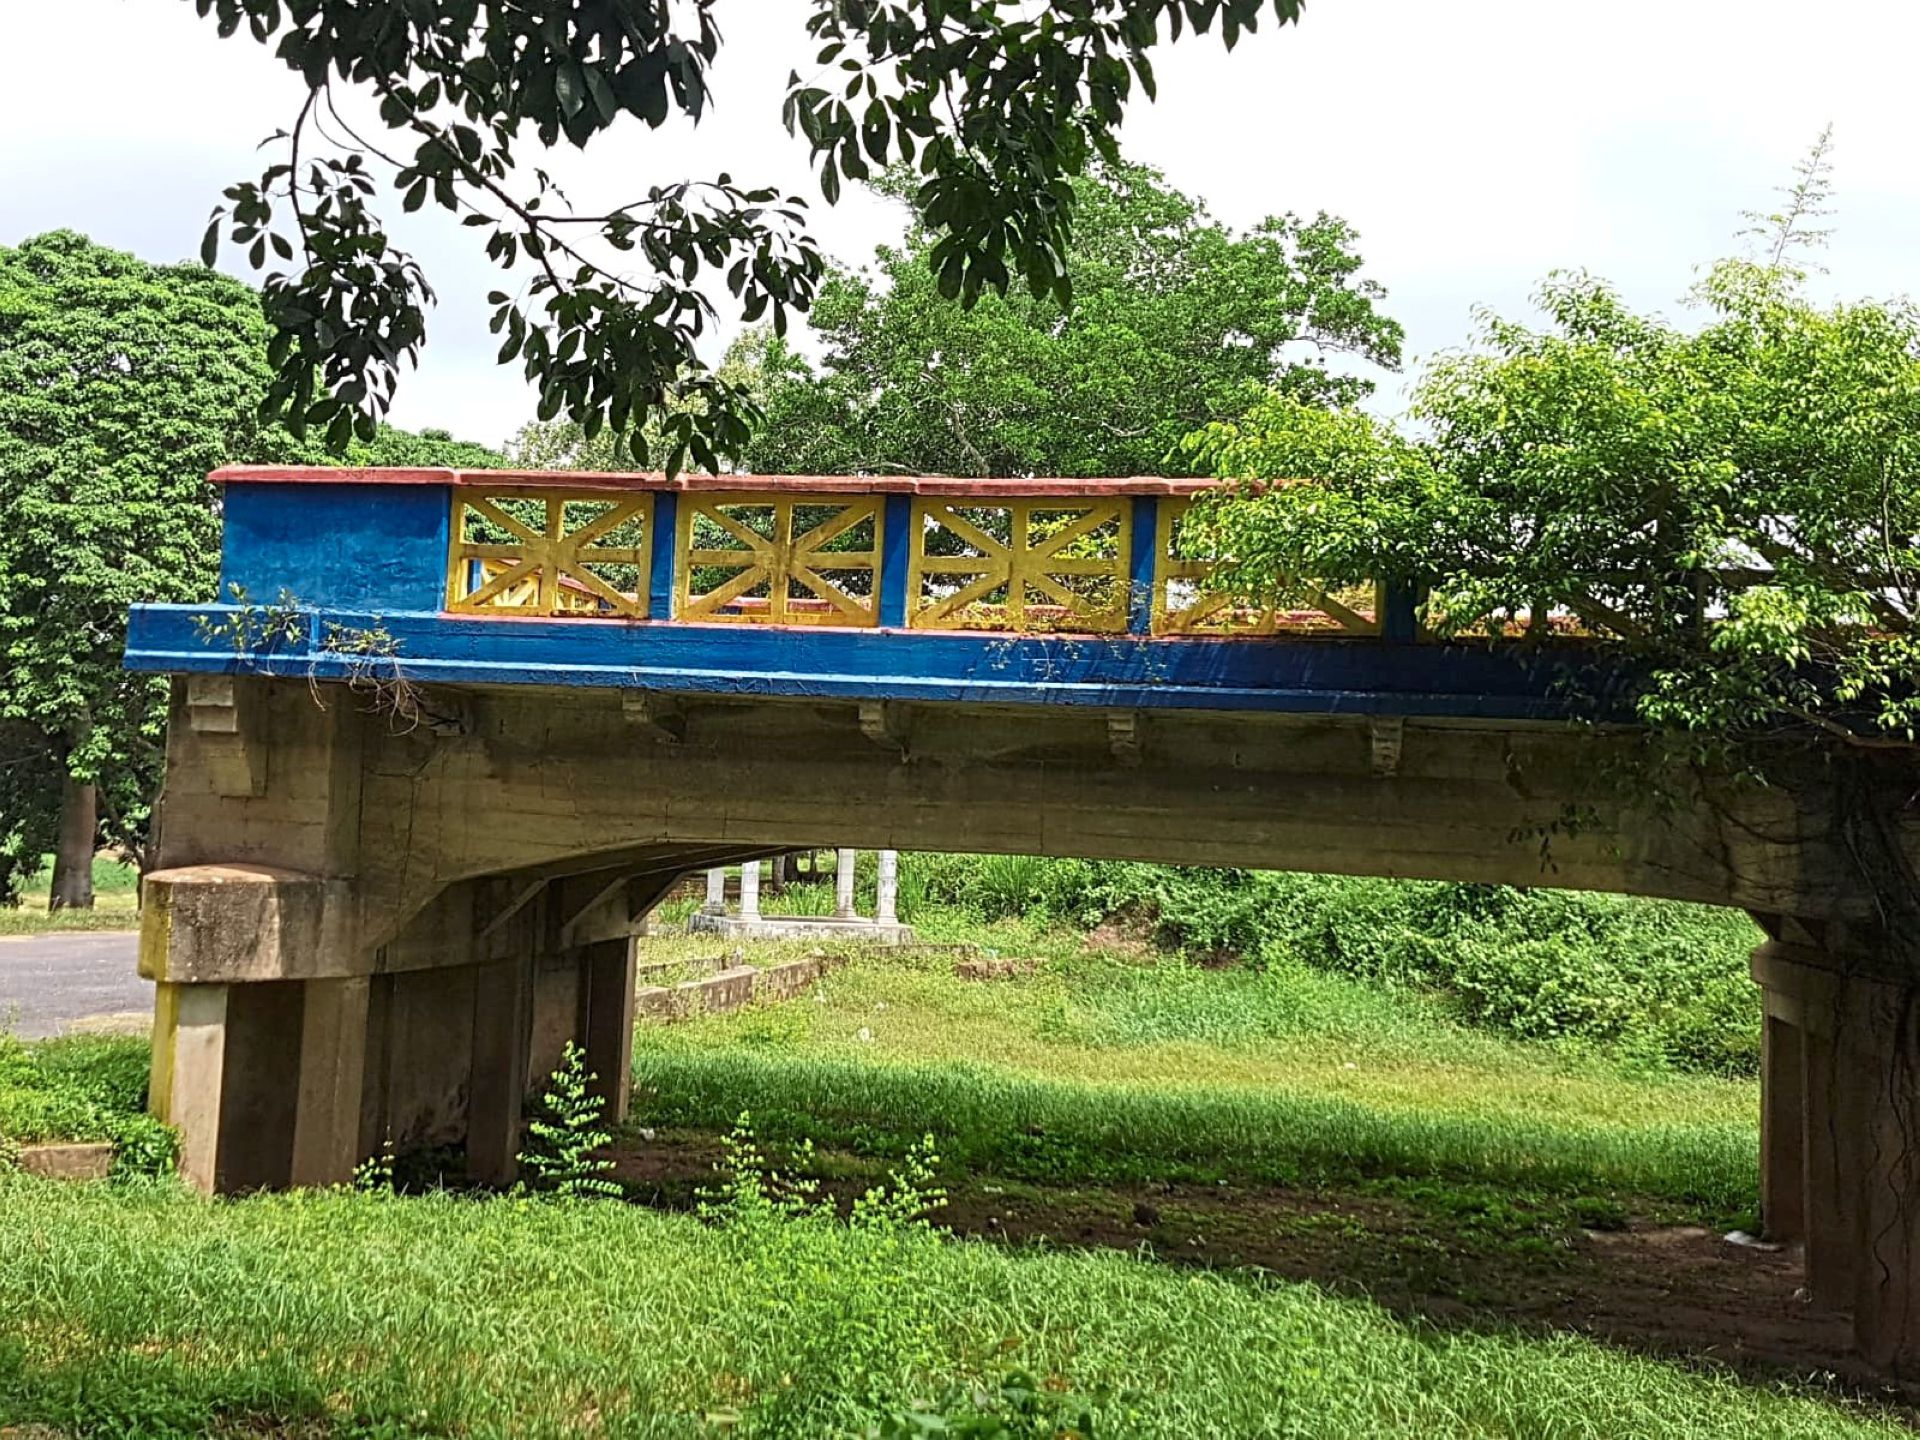 The historical Buloh Kasap bridge in Muar, which Tan gave as an example of a historical site which should be preserved and promoted.